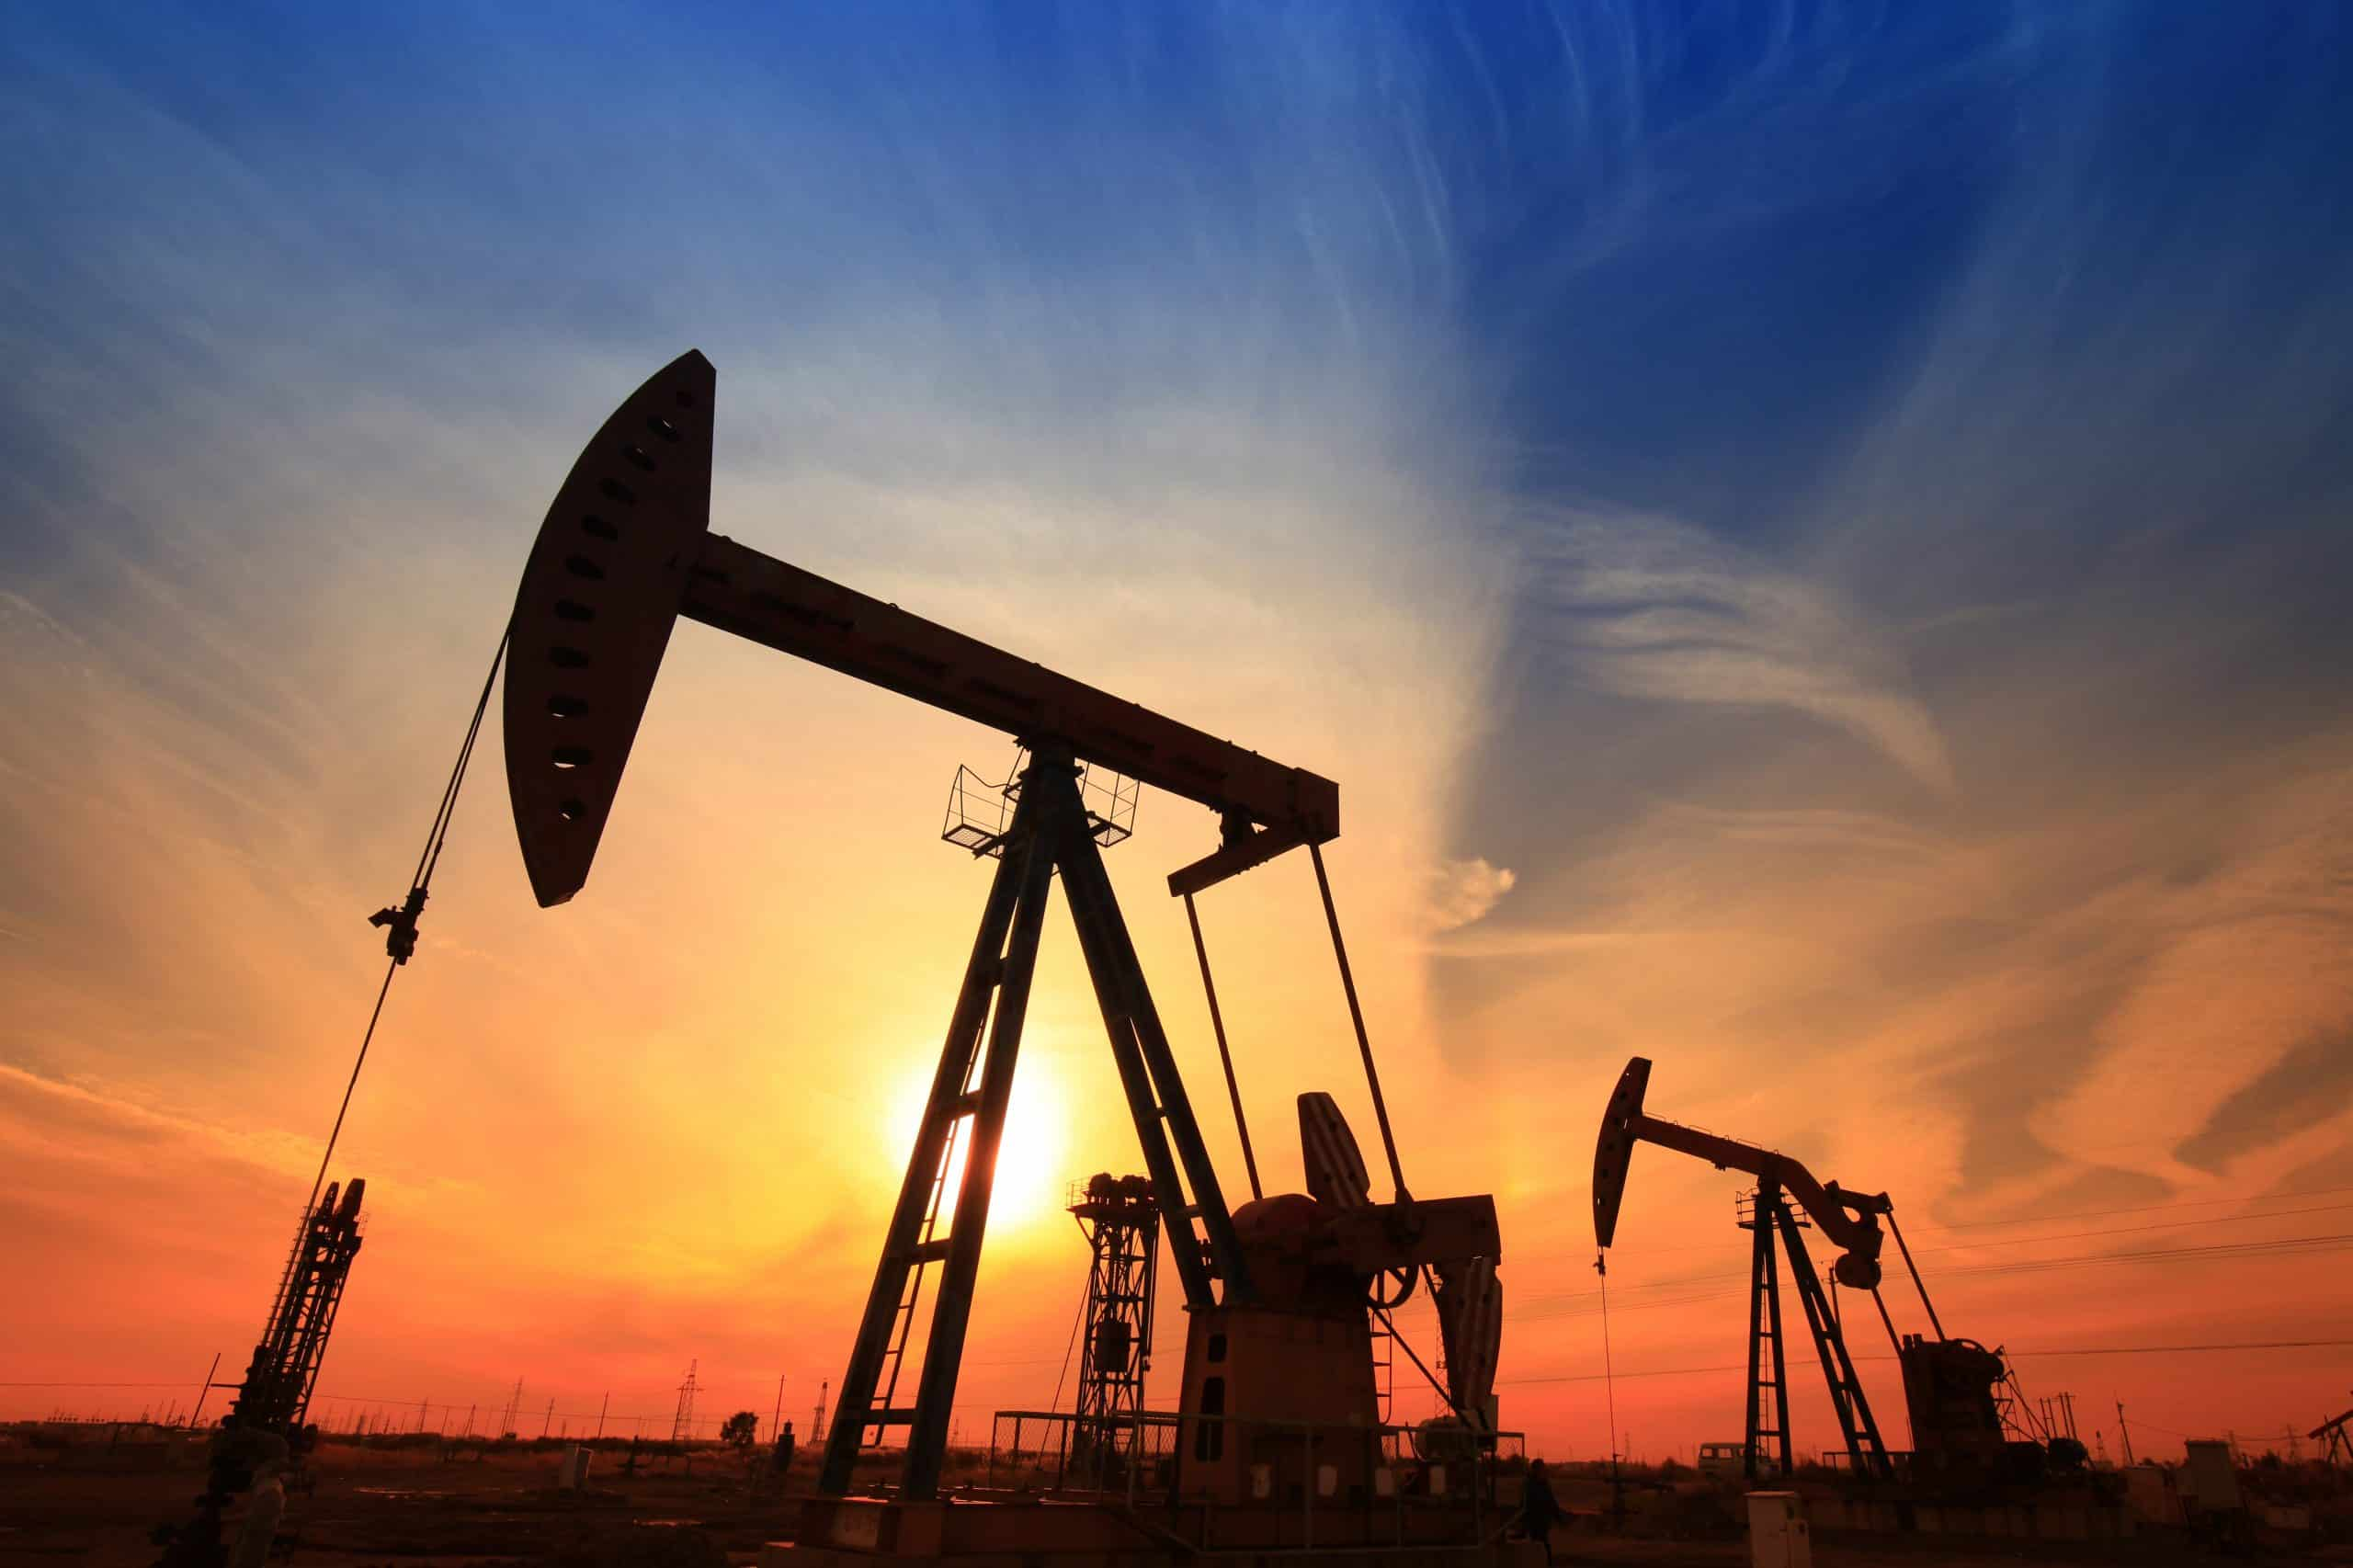 U.S. Oil Prices Expand the Gap to Brent